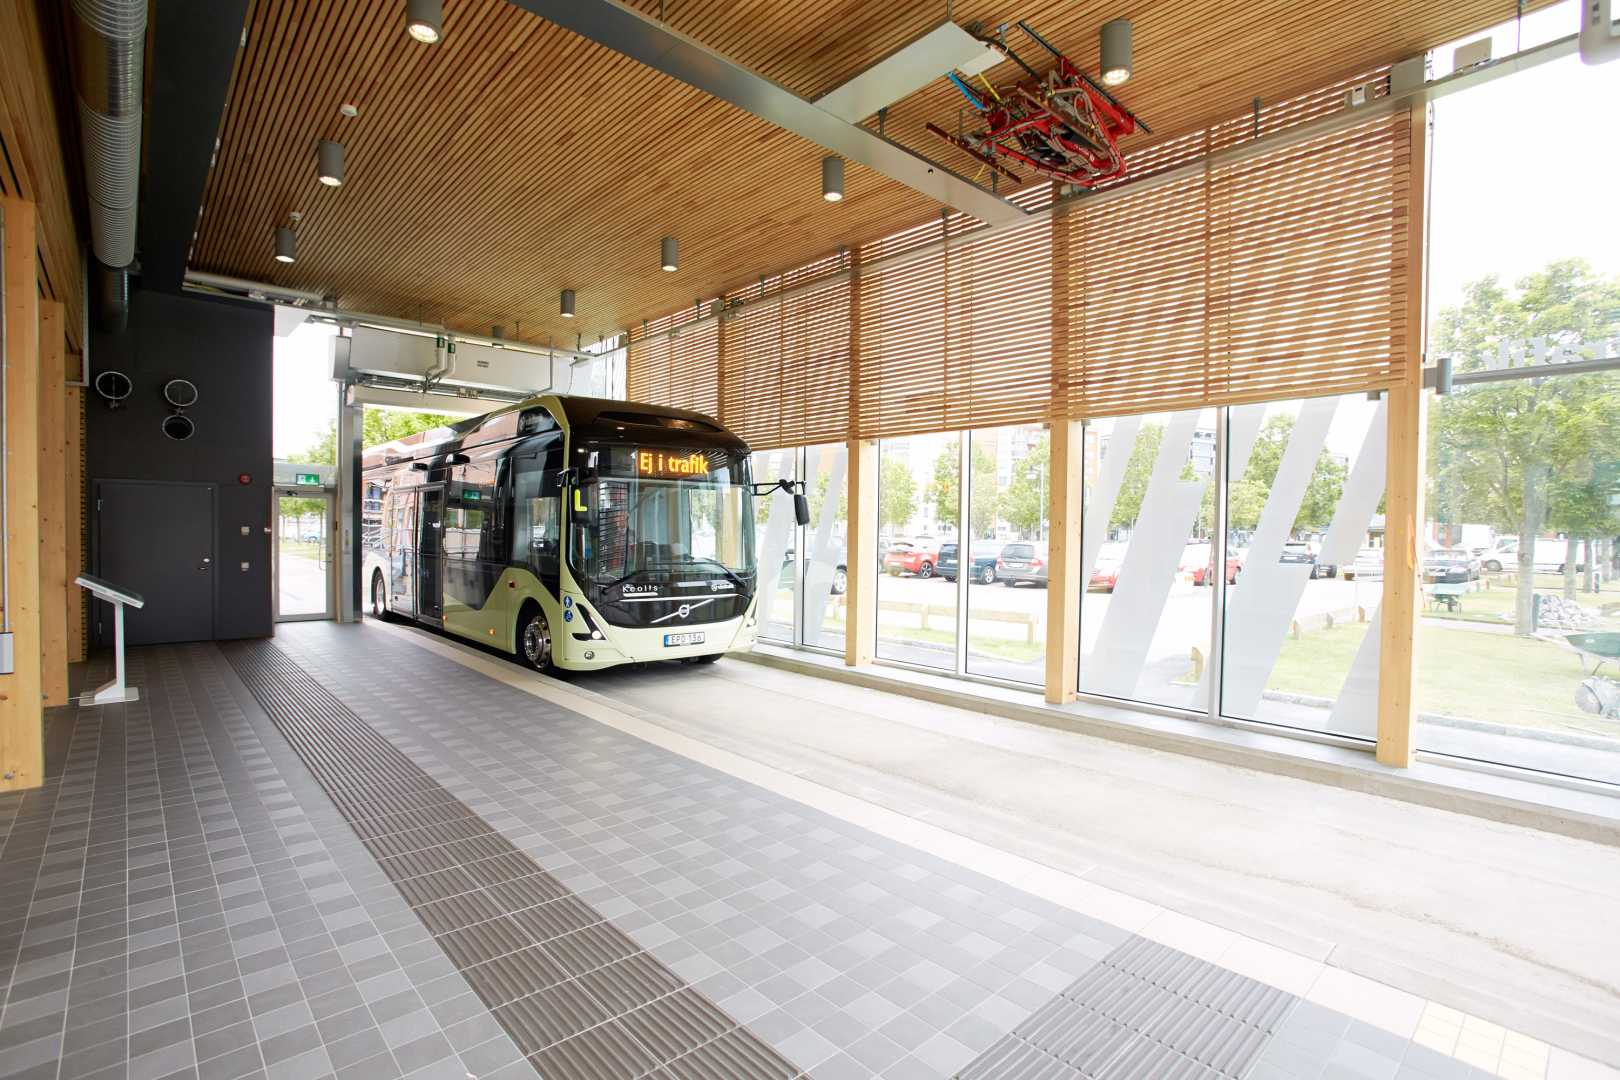 indoor-bus-stop-electricity2.jpg